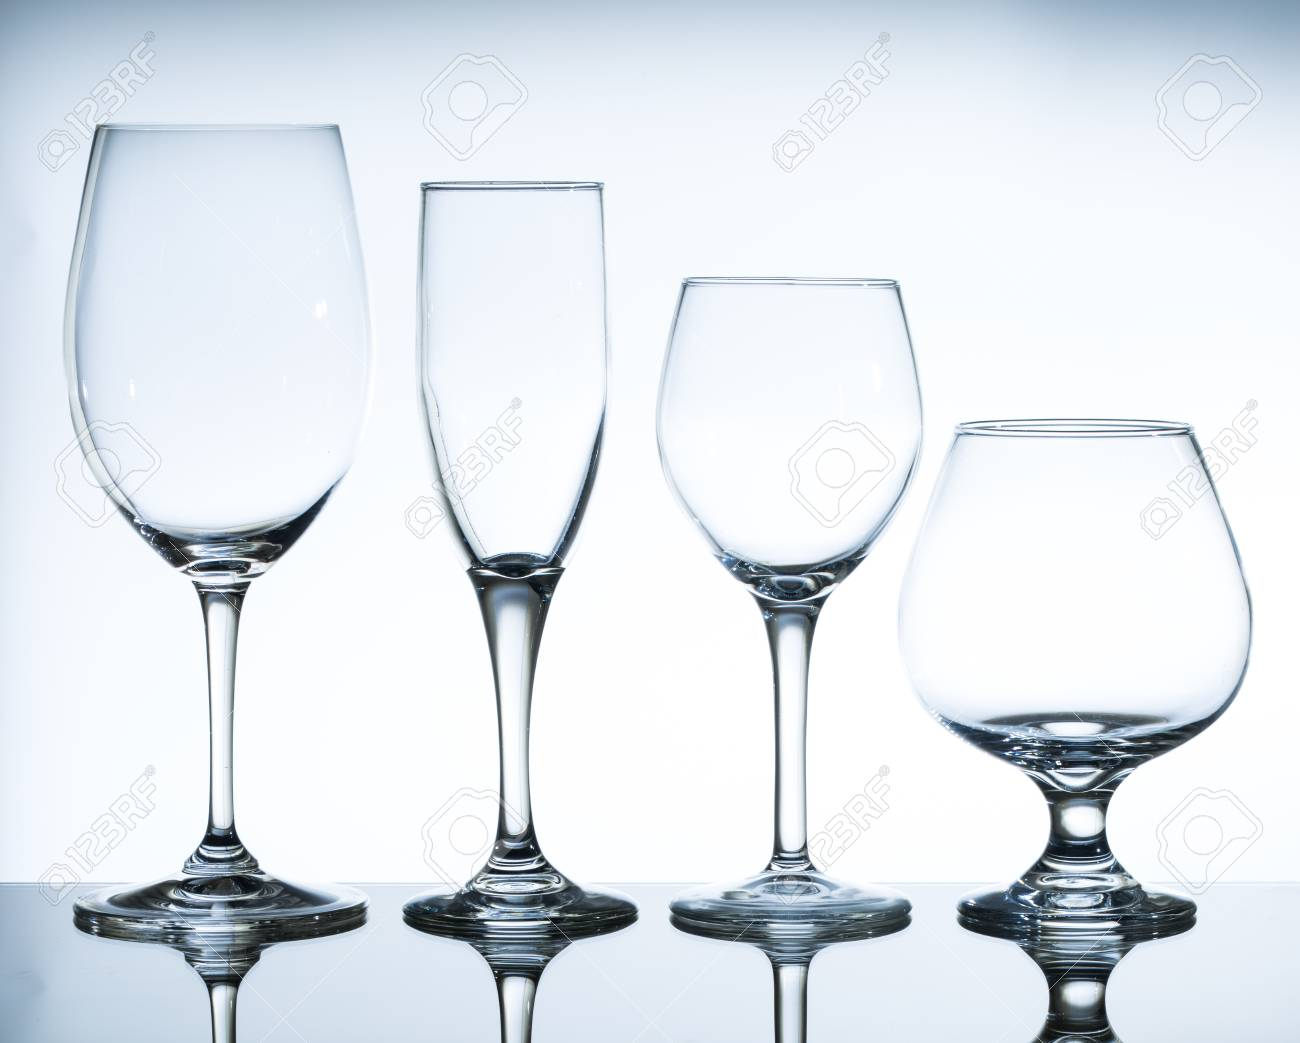 Empty Wine Glasses On The Glass Table And White Background Stock